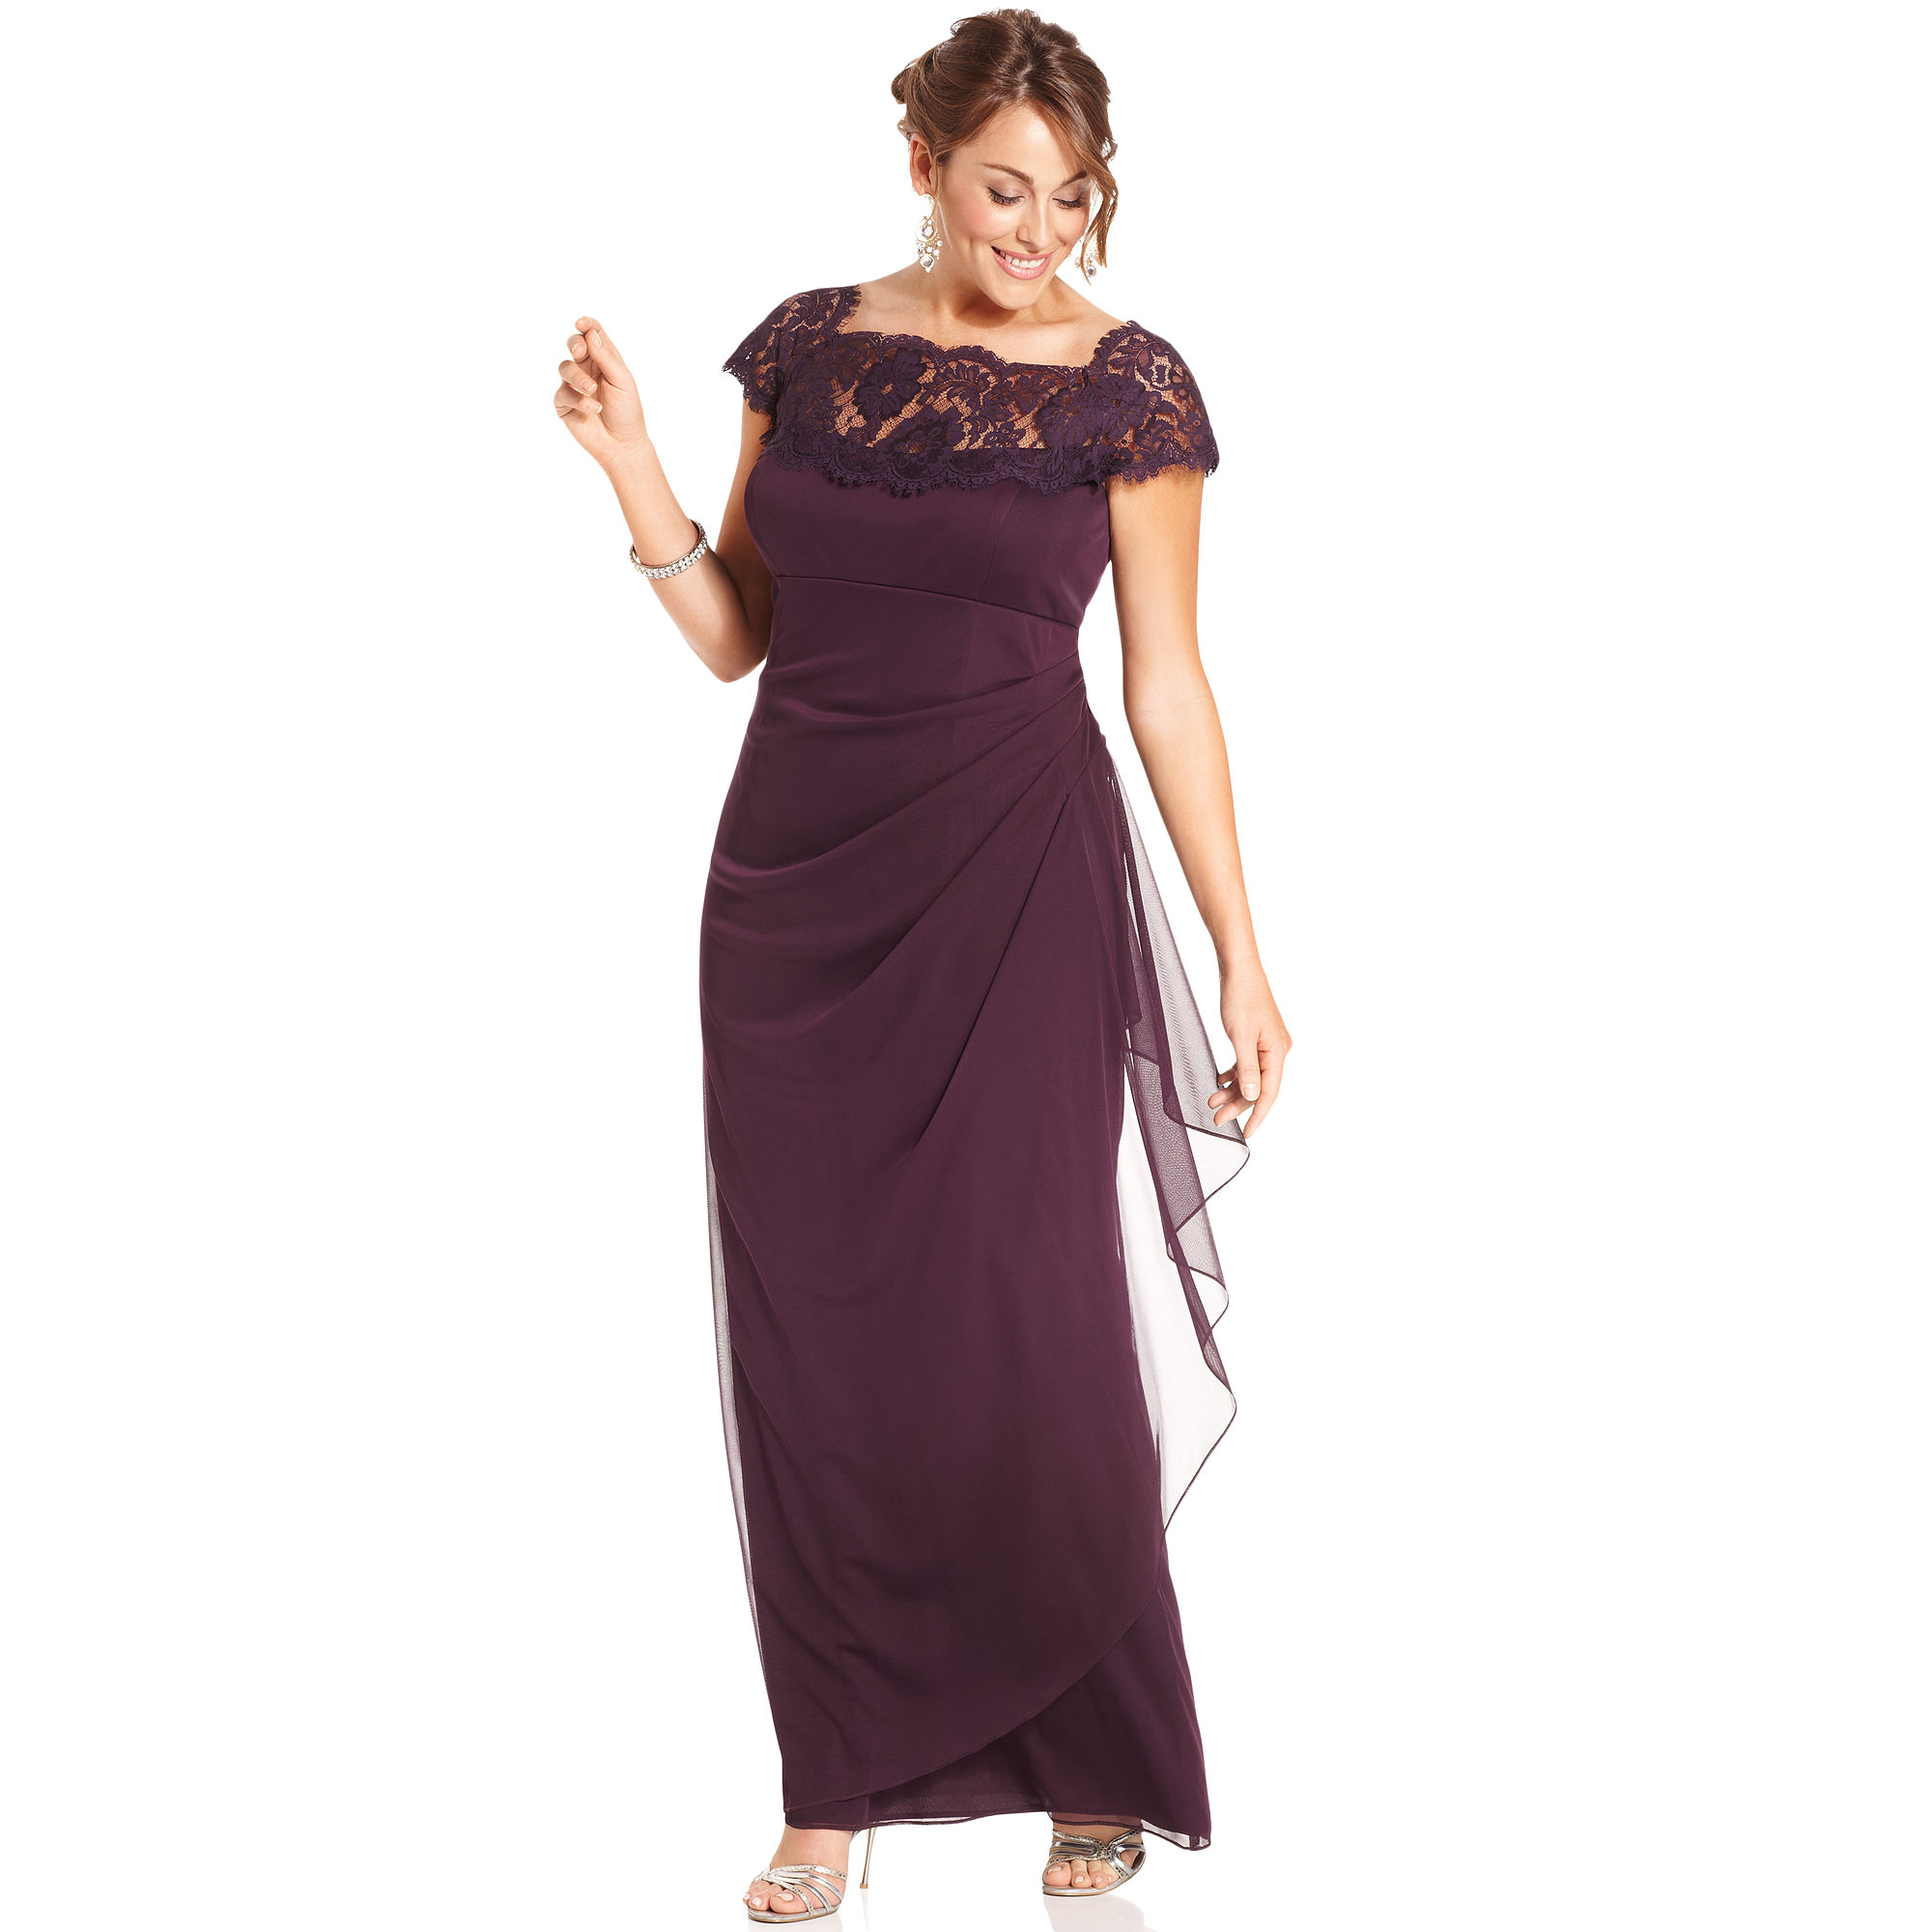 Macy\'s Purple Evening Dresses – Fashion dresses